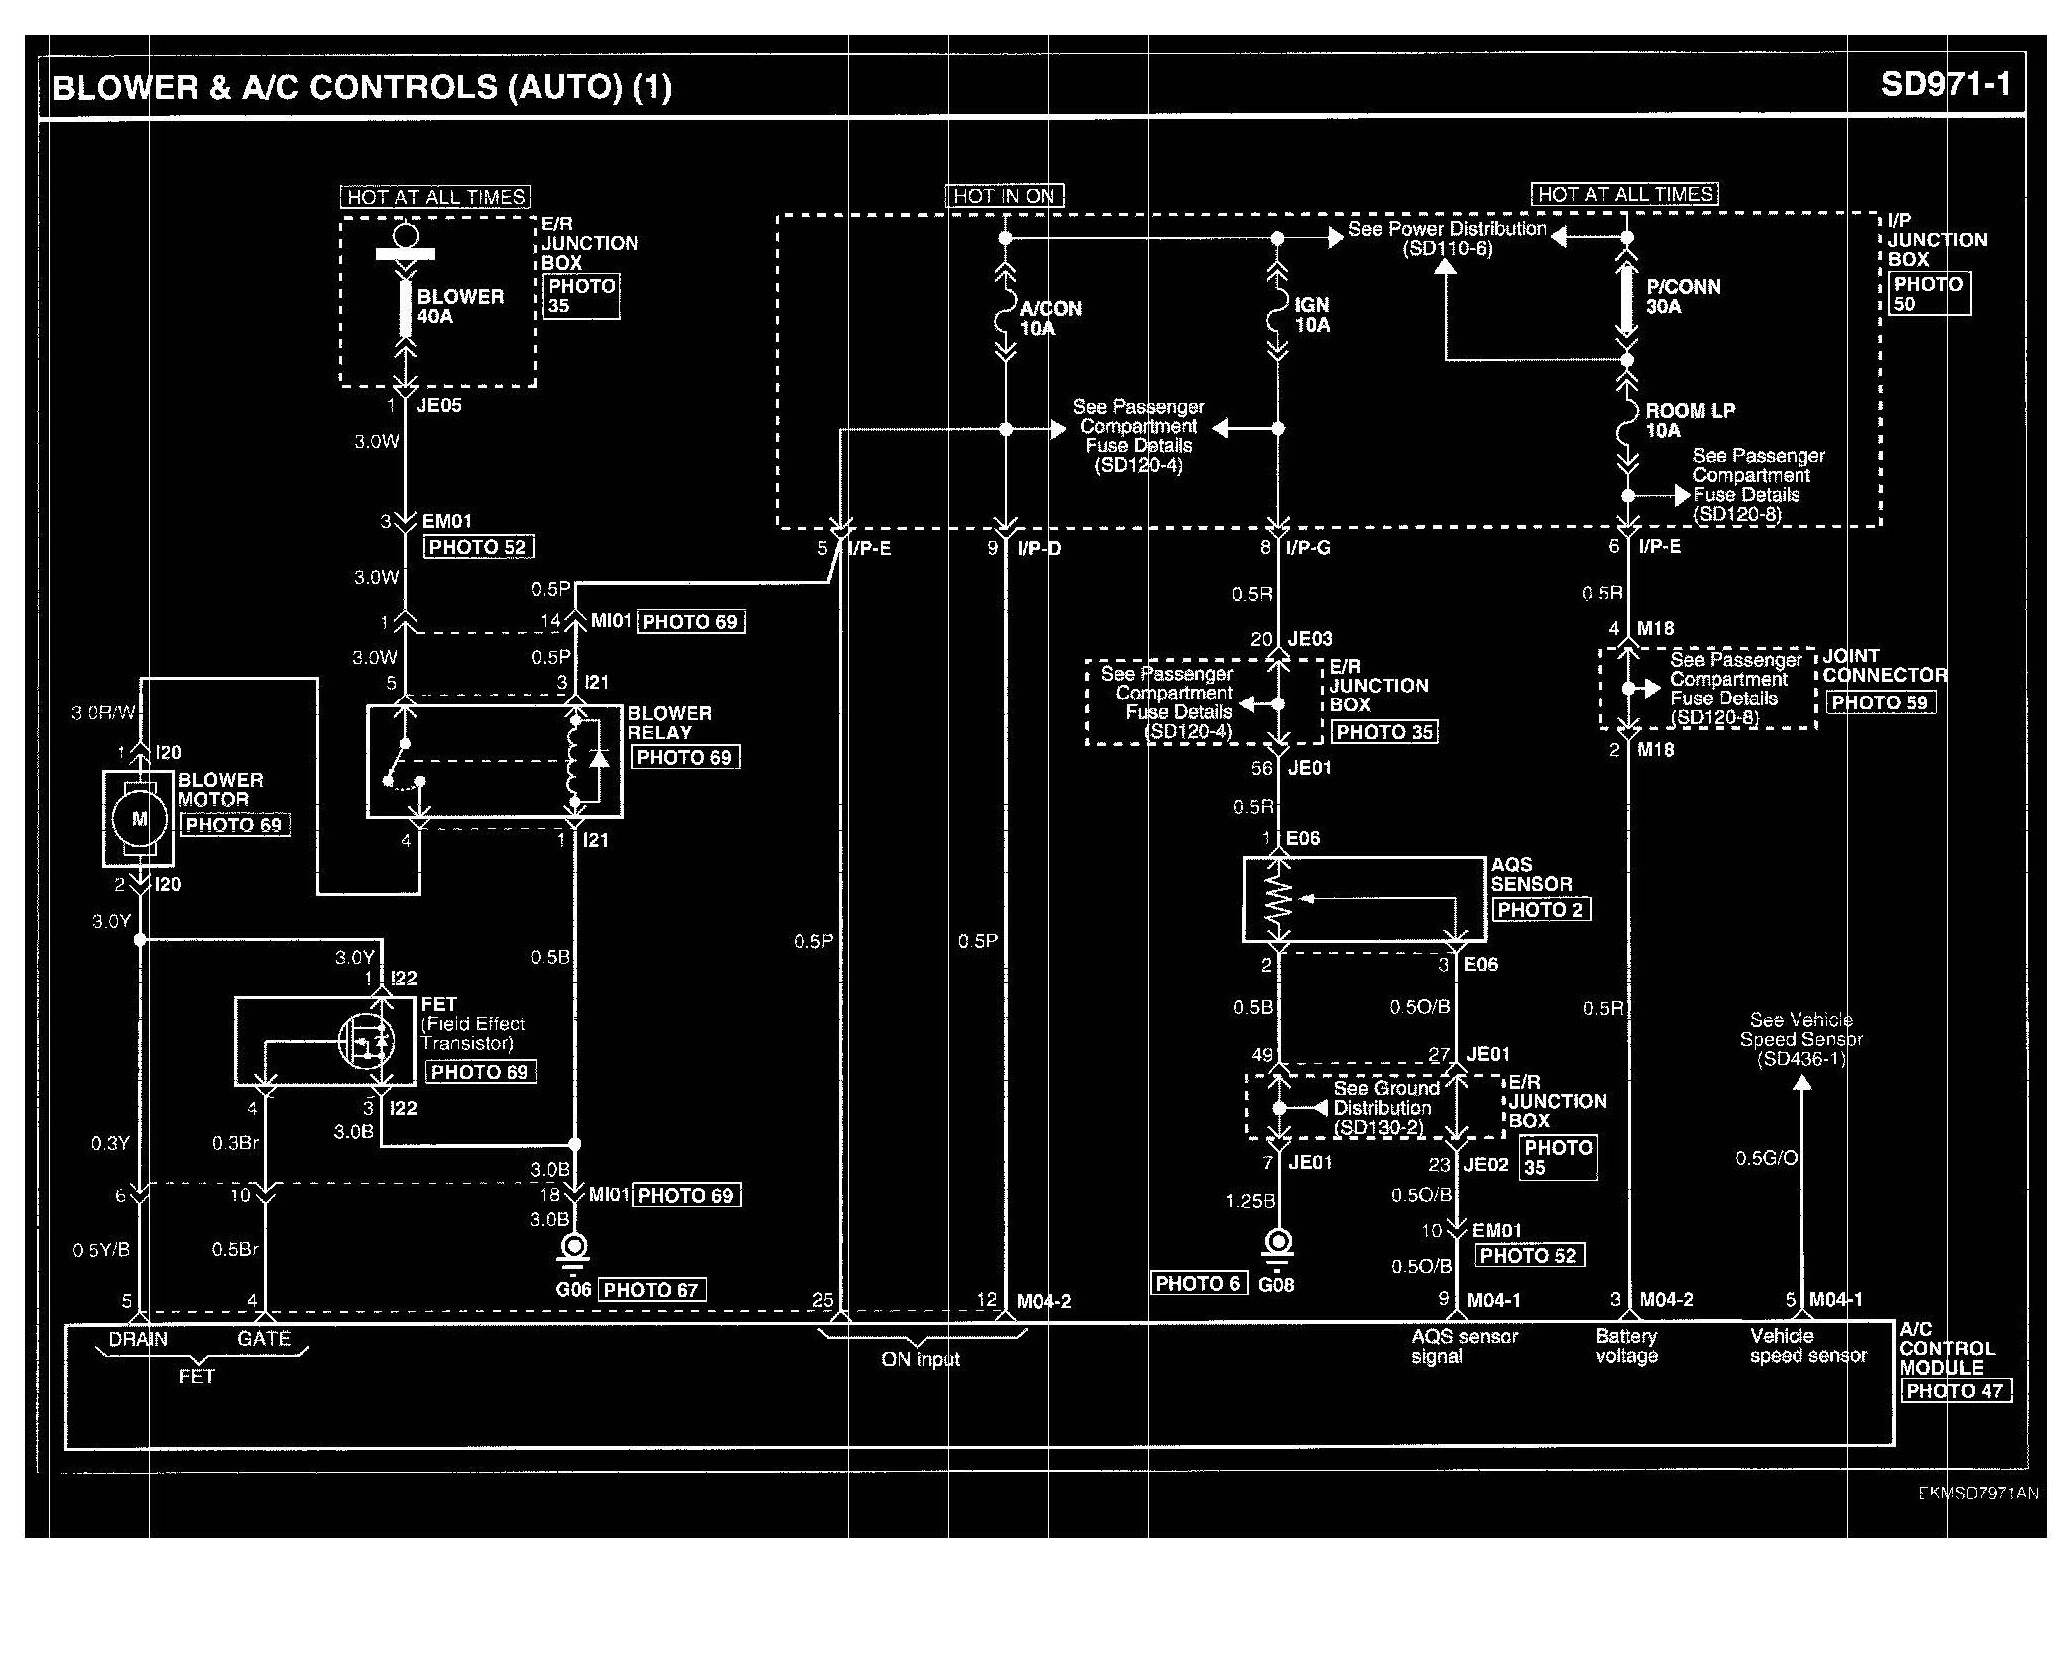 IEH 40] 40 Kia Sportage Wiring Diagram   structure advantage ...